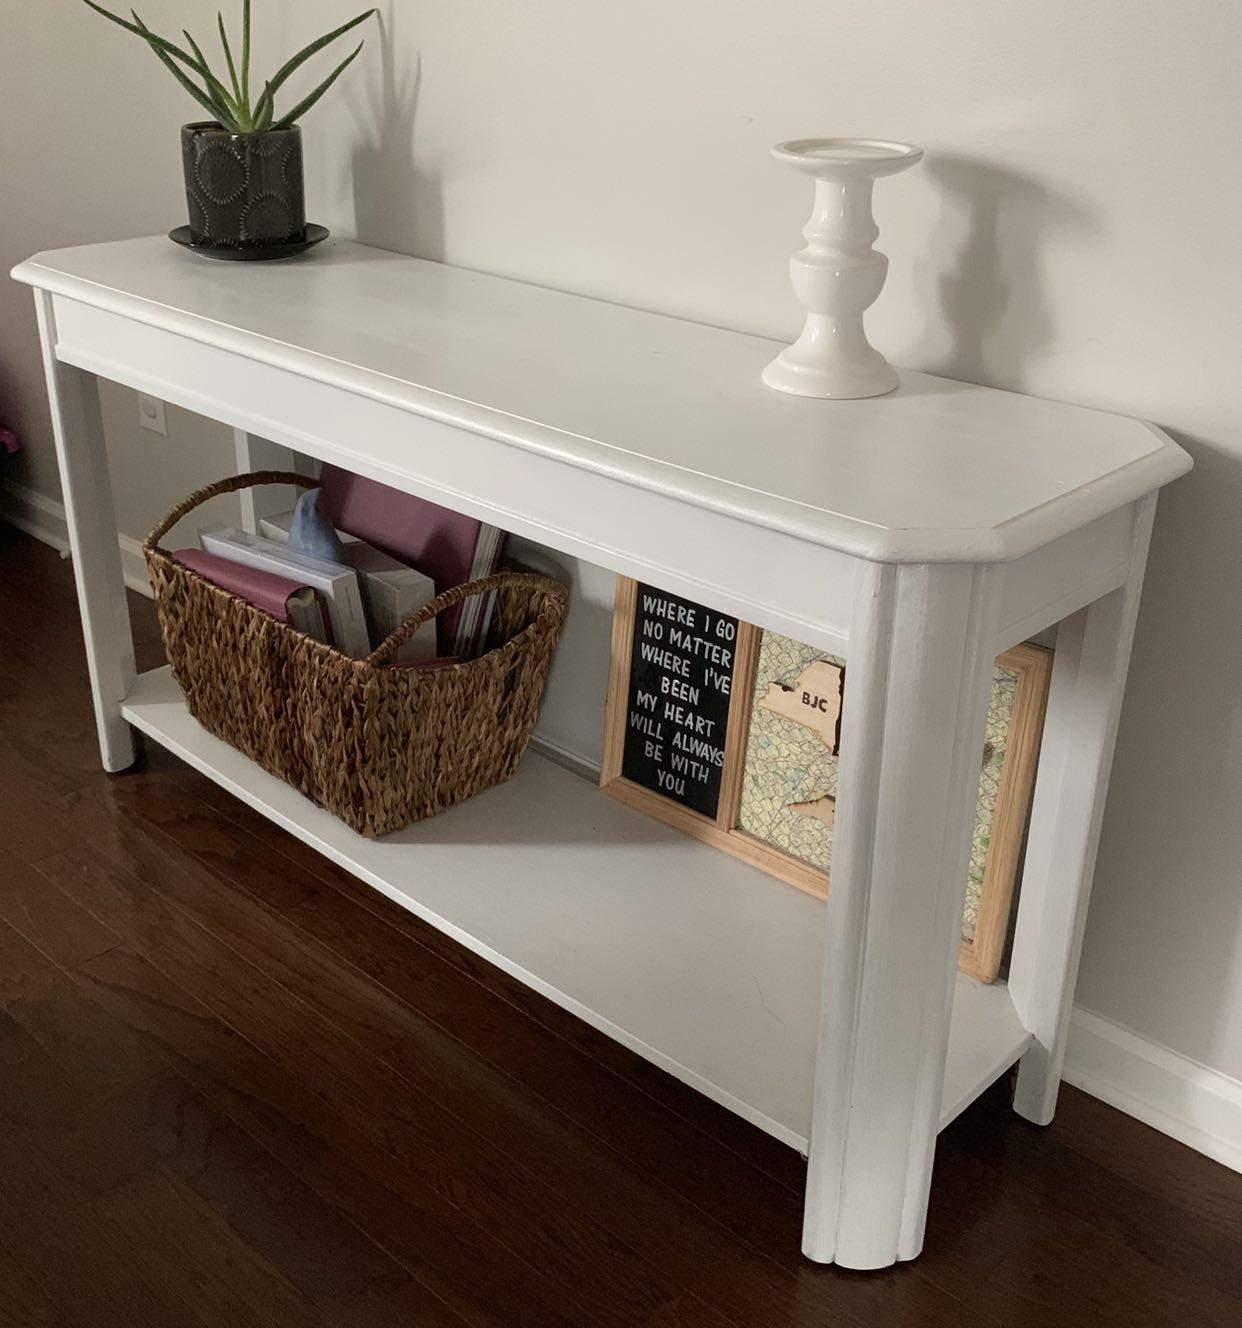 Find More White Painted Sofa Table For Sale At Up To 90